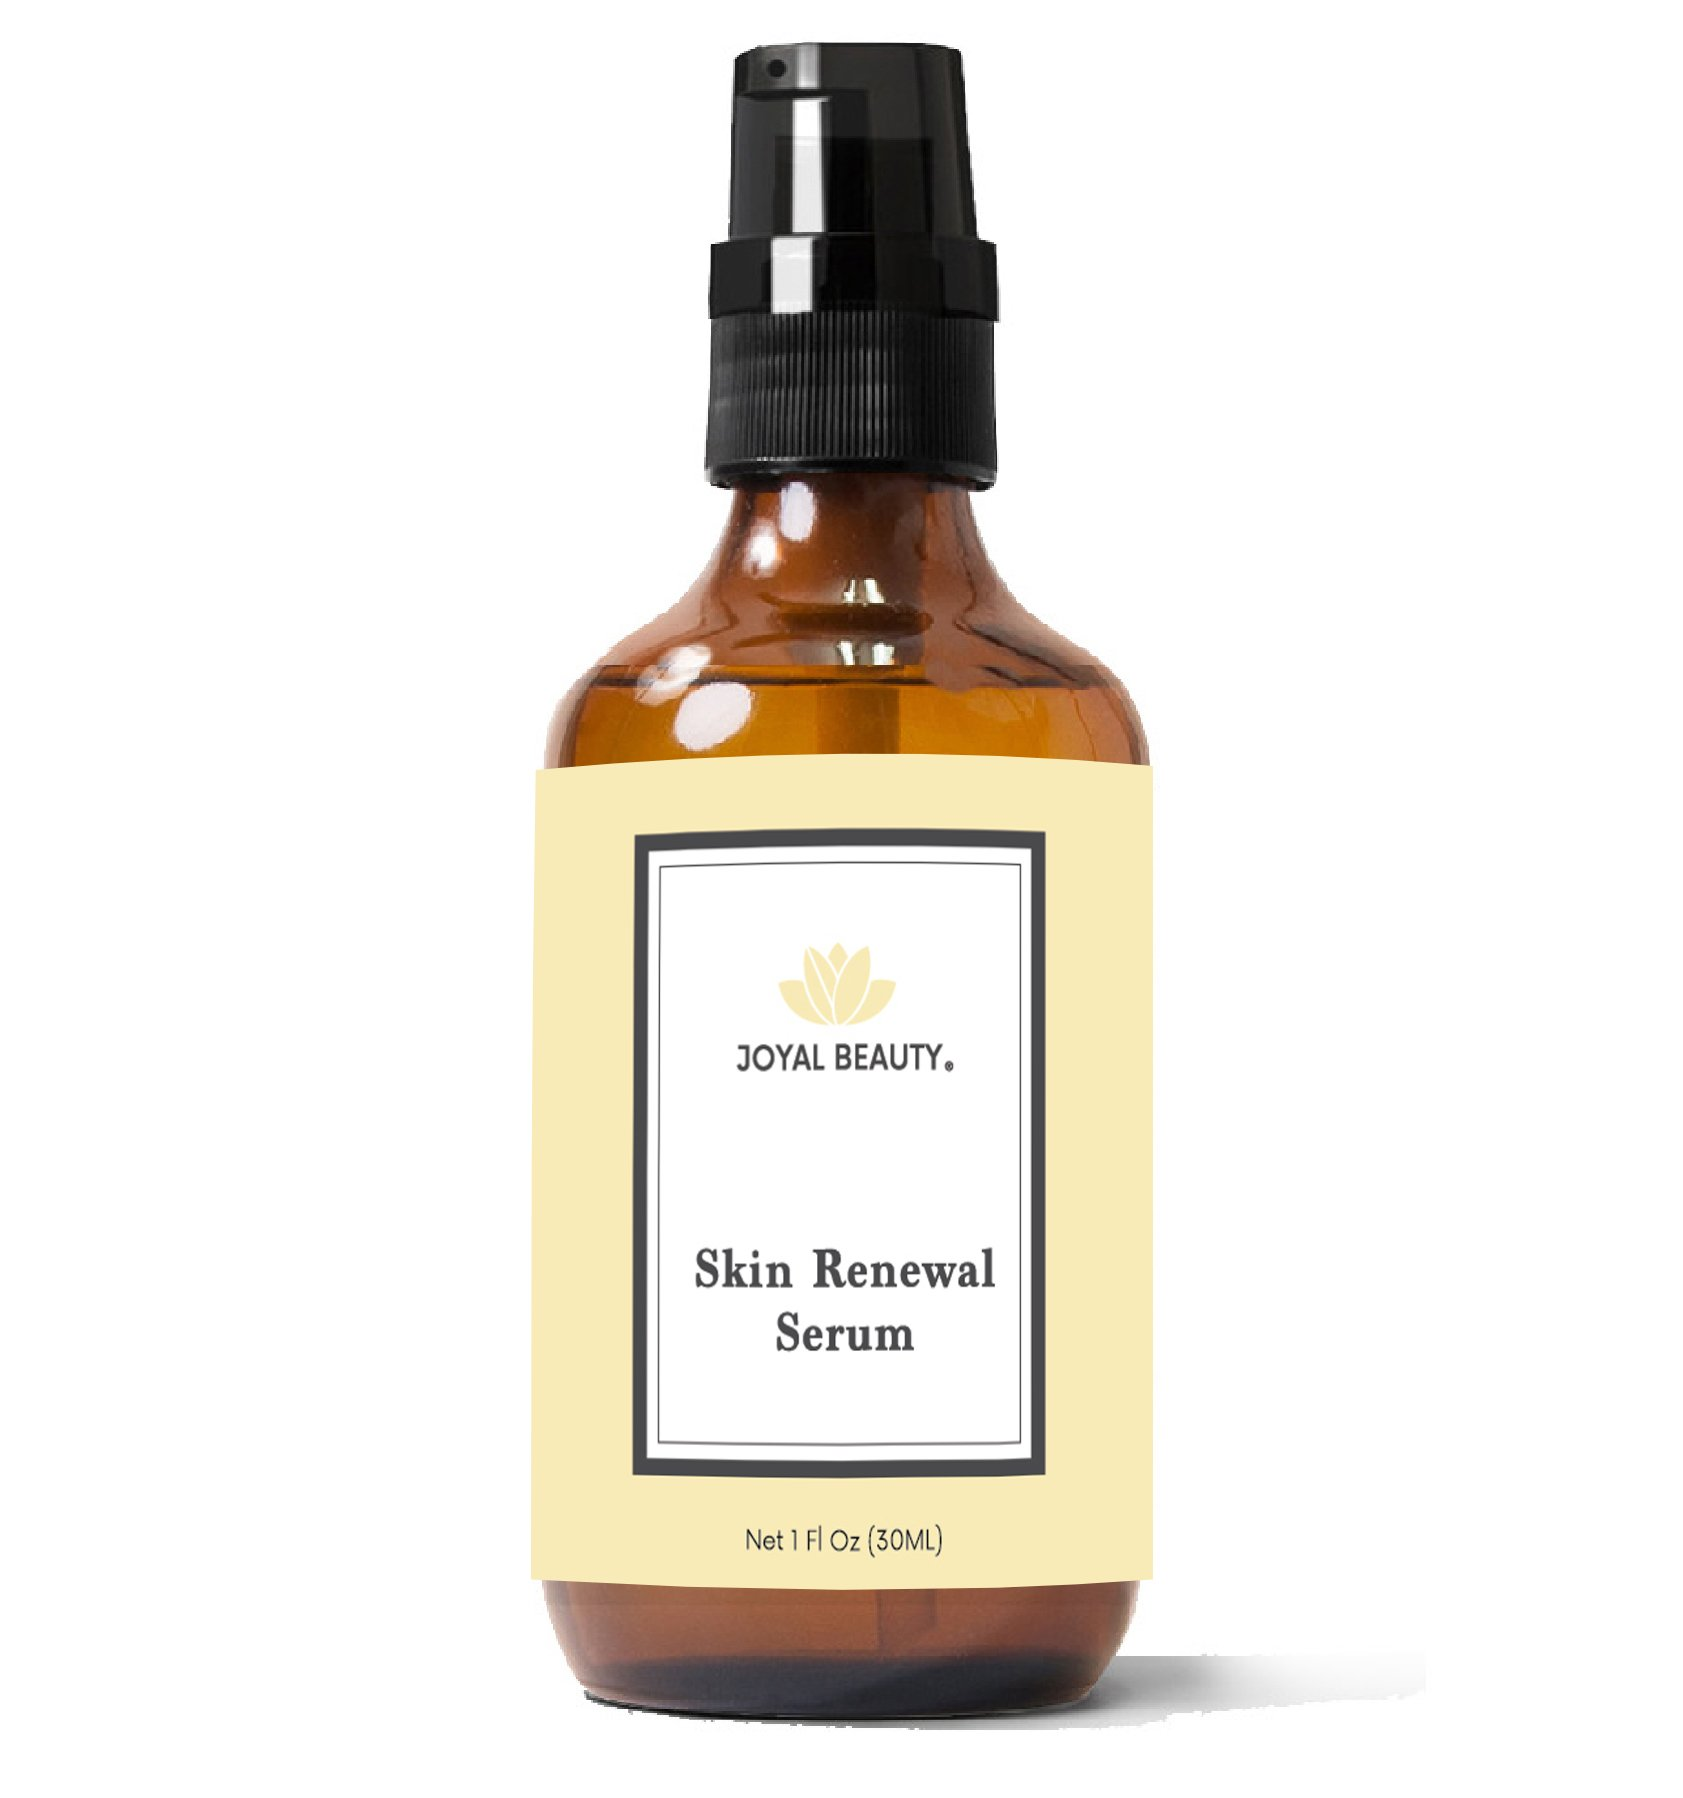 Joyal Beauty Organic Timeless Skin Renewal Serum for Face Skin Eyes. Best Intensive Firming Renewing Resurfacing Solution to Get Your Baby Soft Skin. Enriched with Honey, Royal Jelly, Bee Propolis.